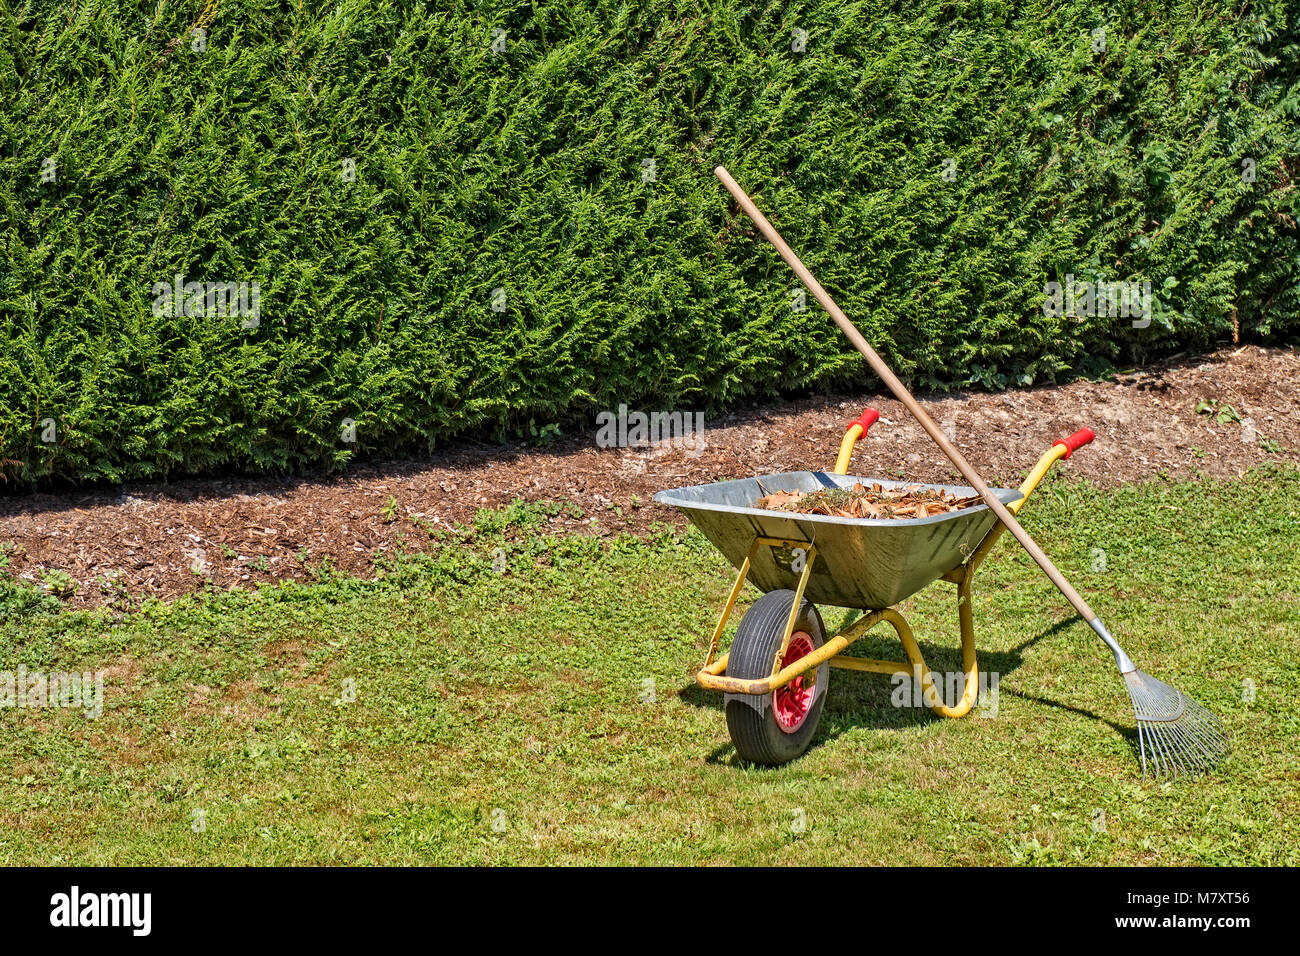 Wheelbarrow filled with plant waste standing on grass in private garden Stock Photo